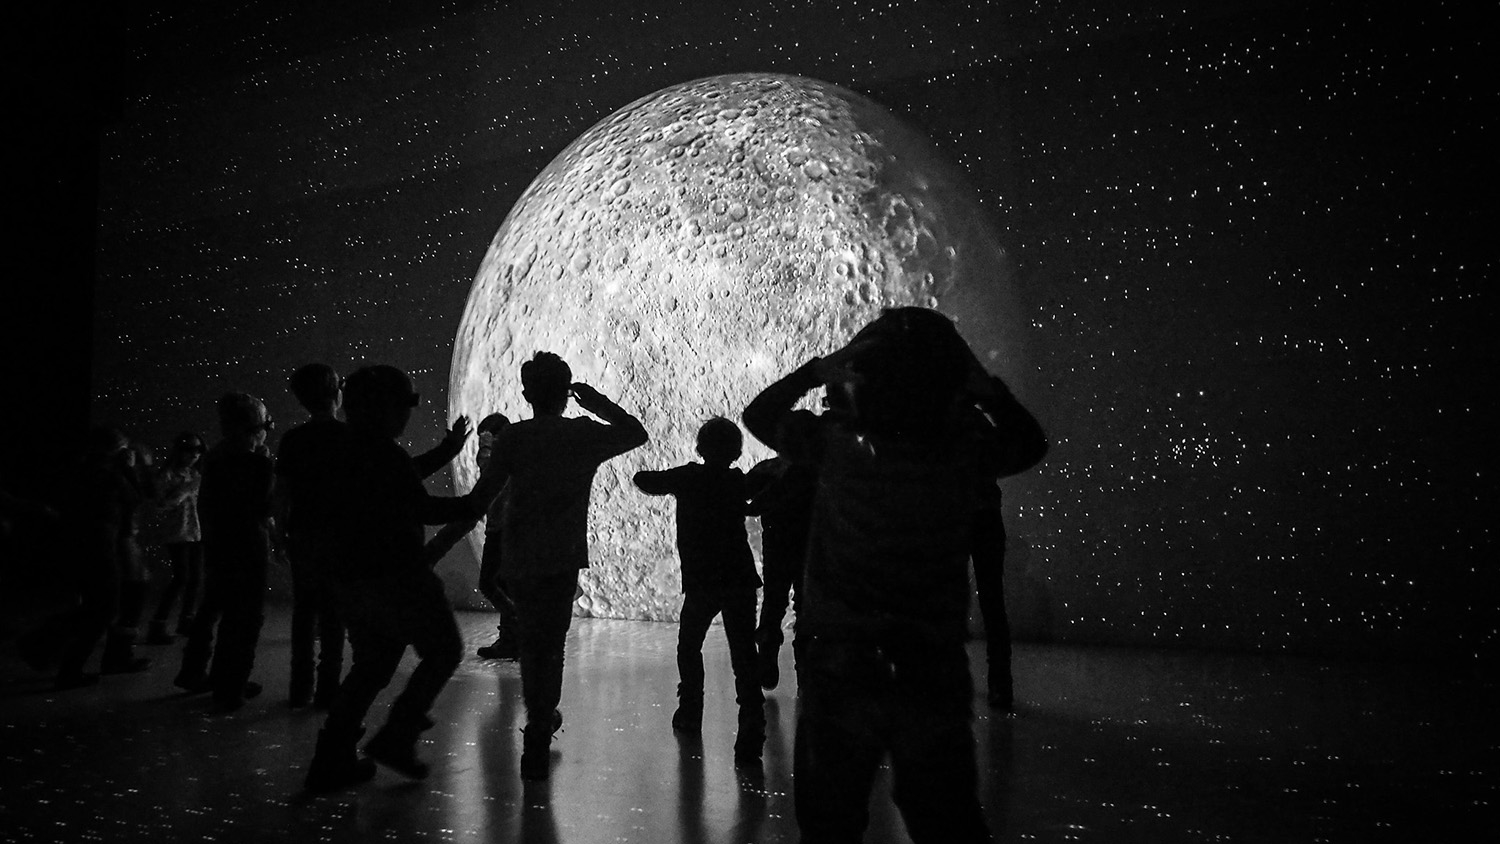 children silhouetted in front of a museum exhibit about the moon